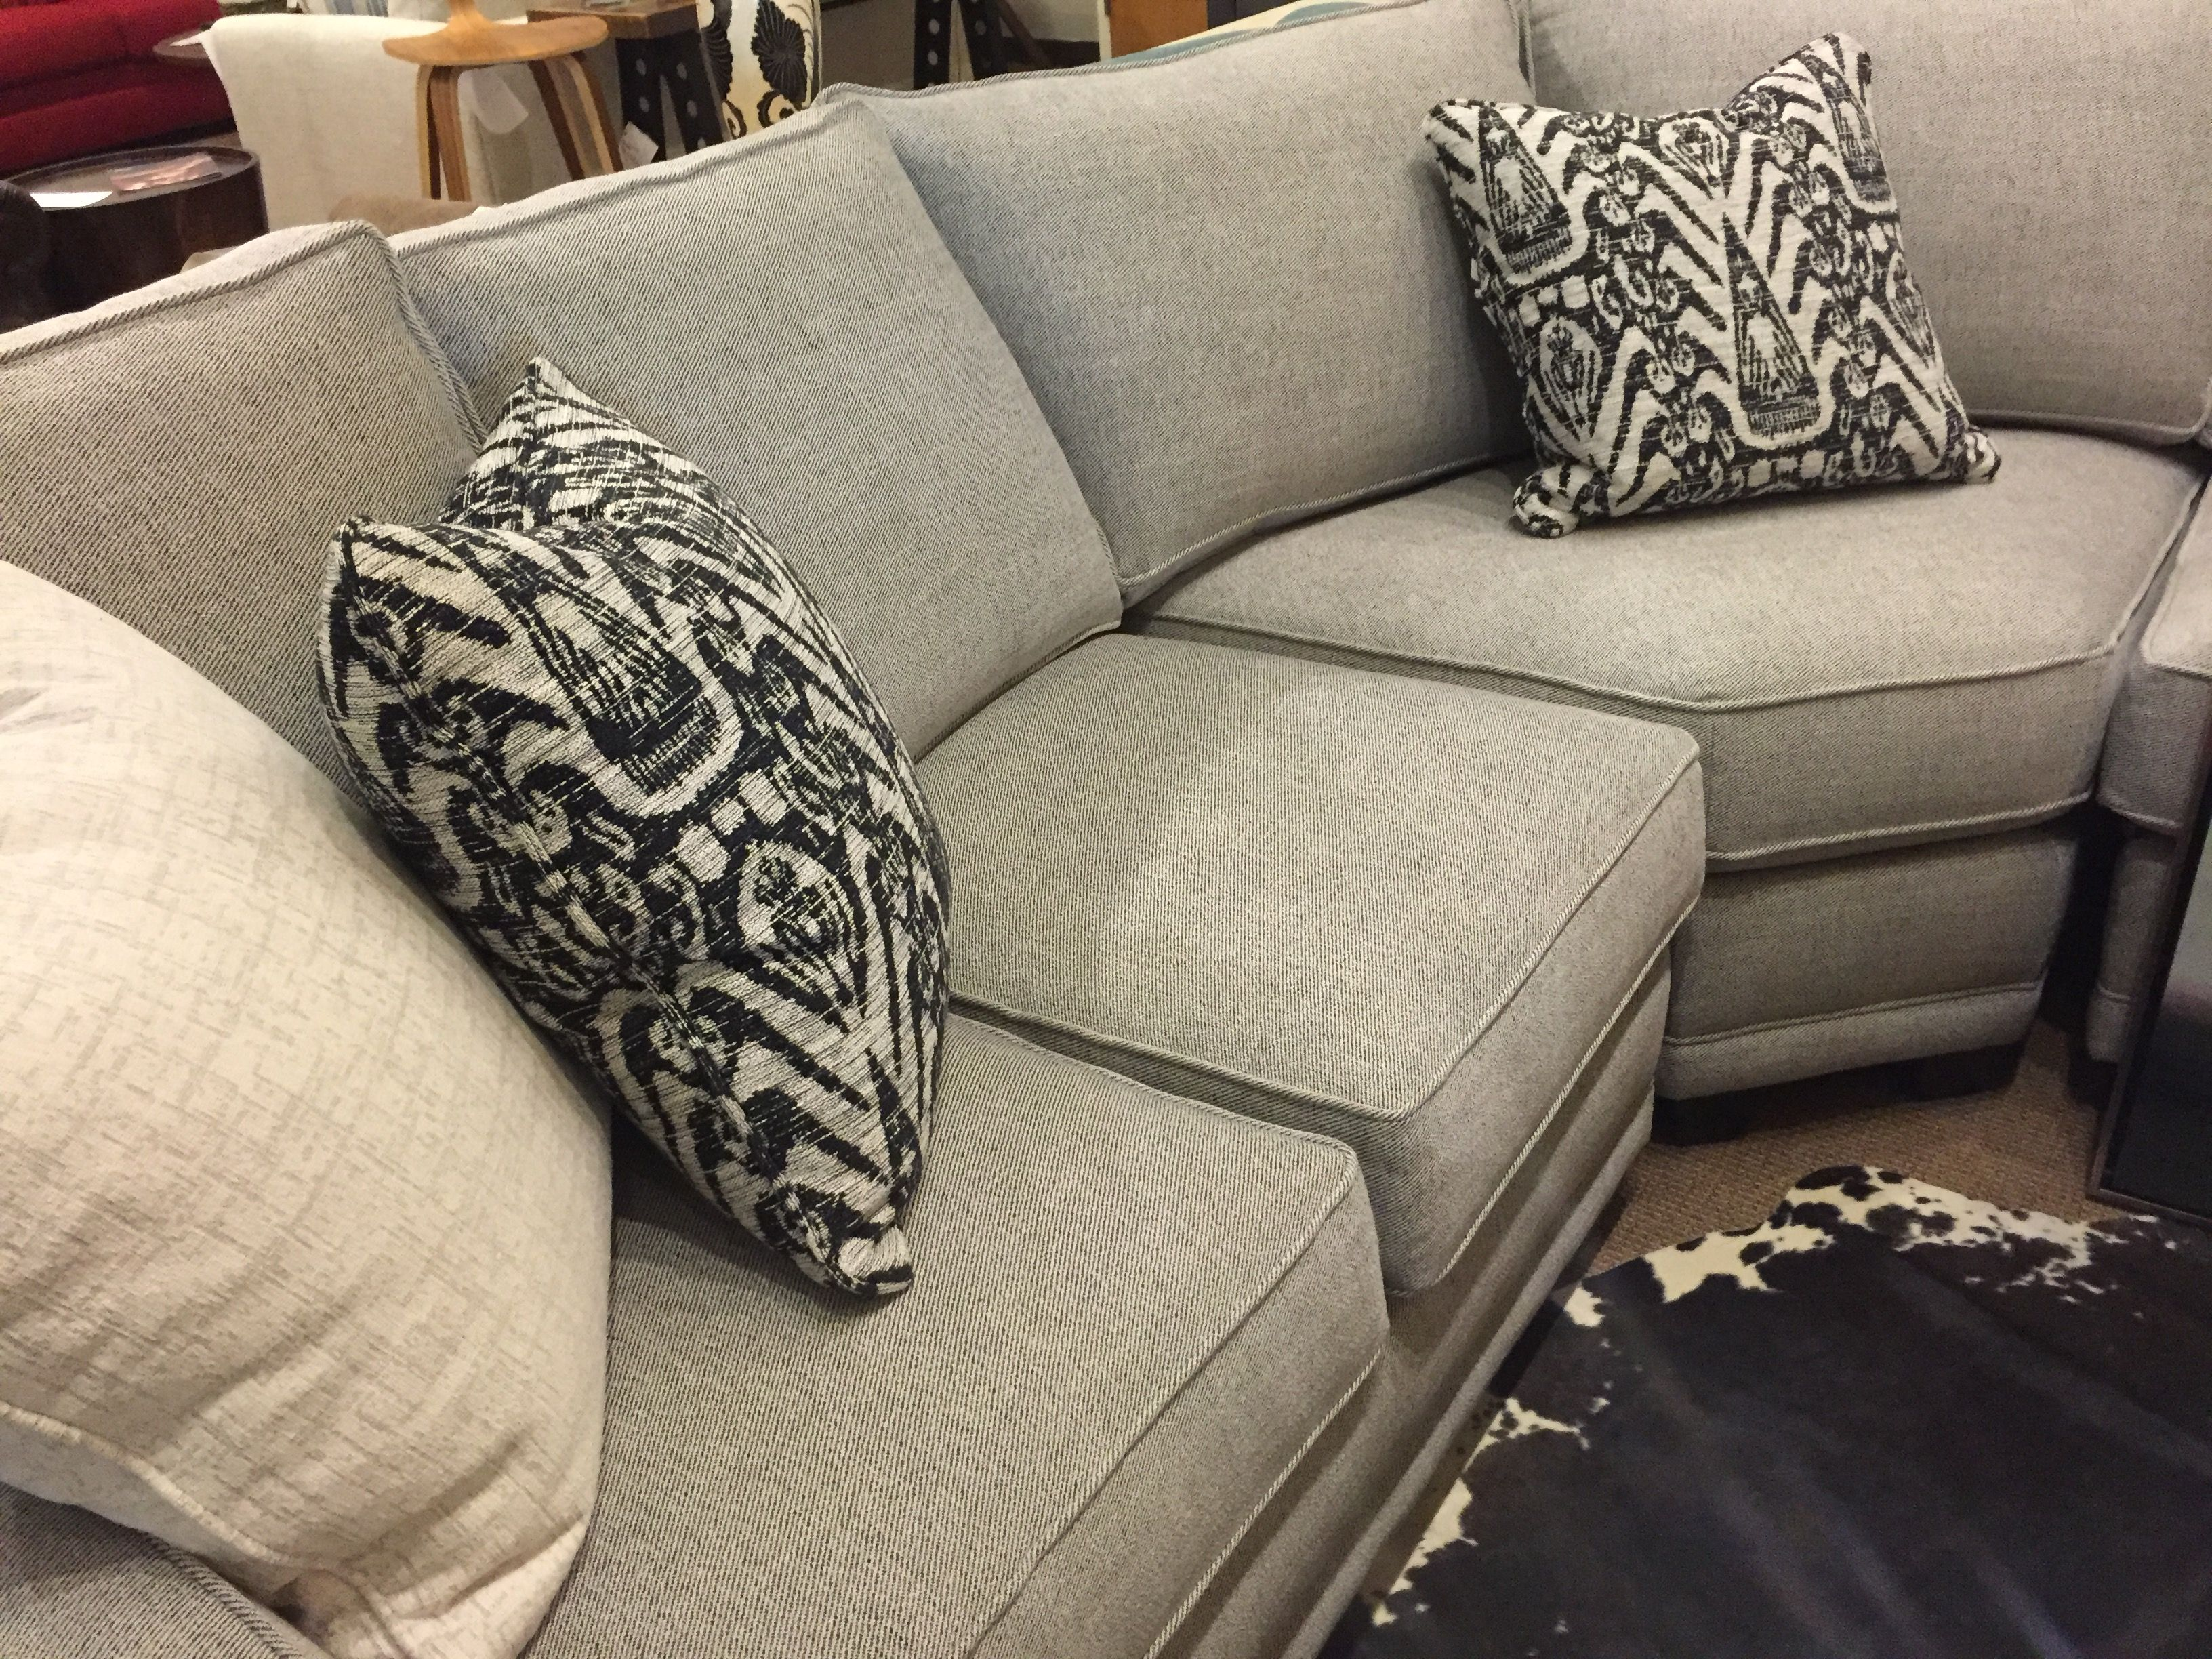 Furniture In Knoxville Braden S Lifestyles Sectional Sofa Fine Home Furnishings Décor Interiors Interior Design The